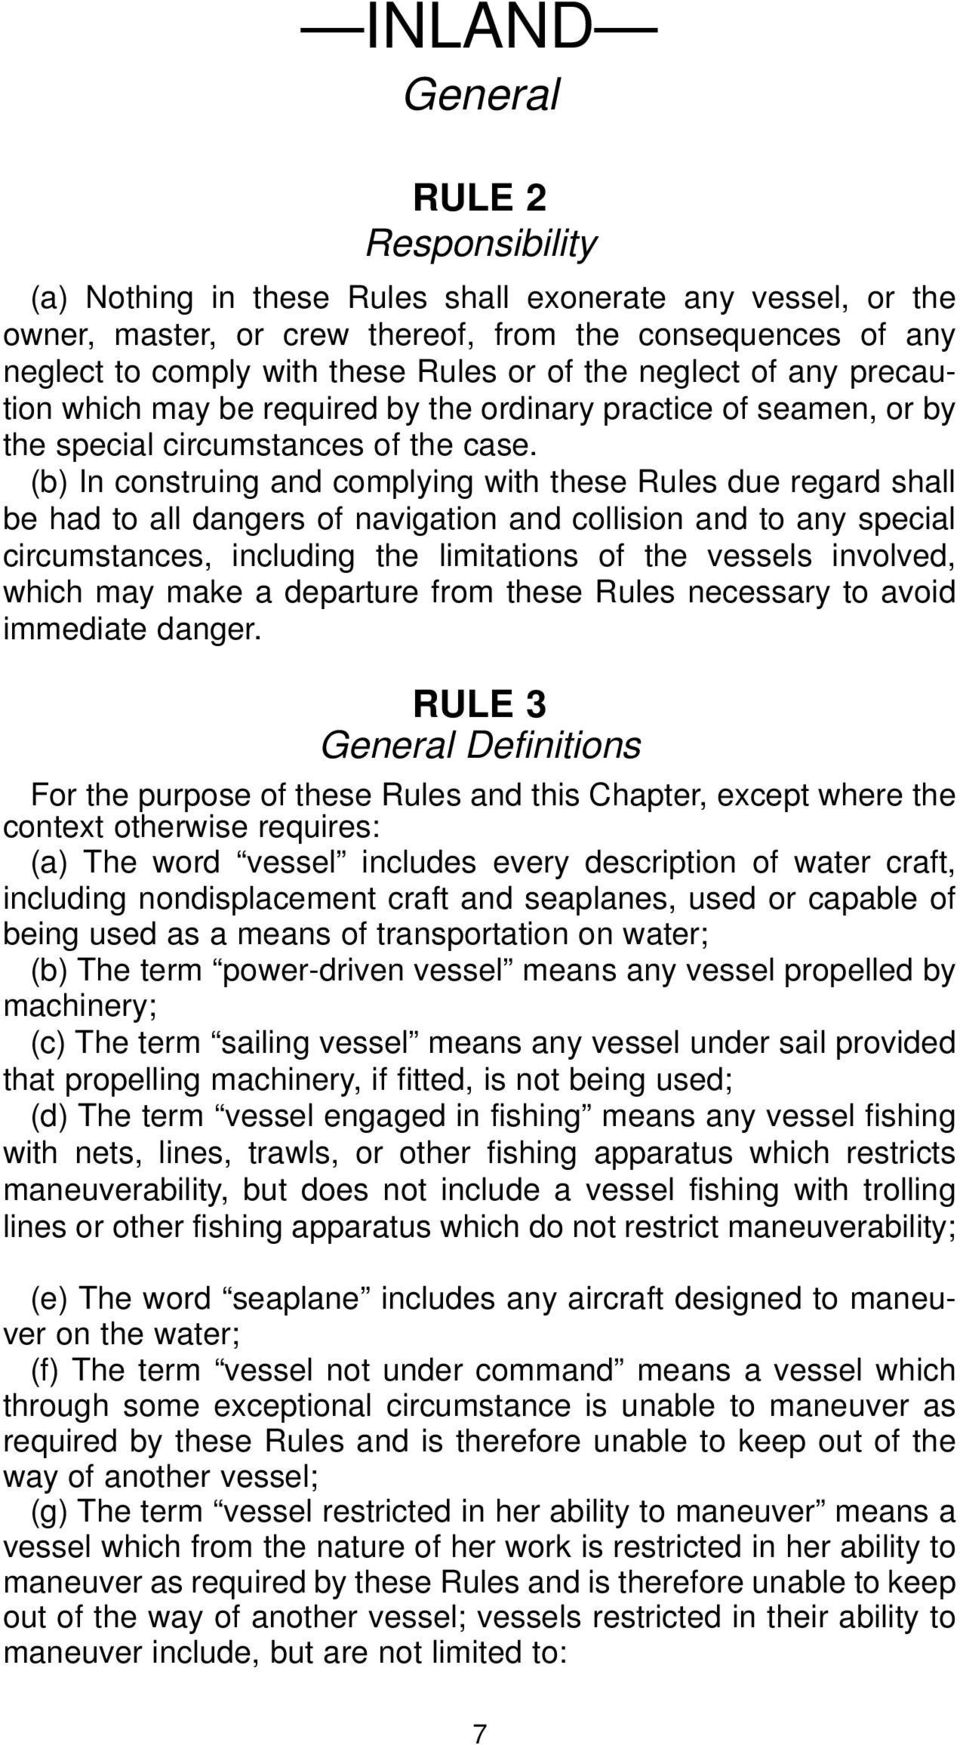 (b) In construing and complying with these Rules due regard shall be had to all dangers of navigation and collision and to any special circumstances, including the limitations of the vessels